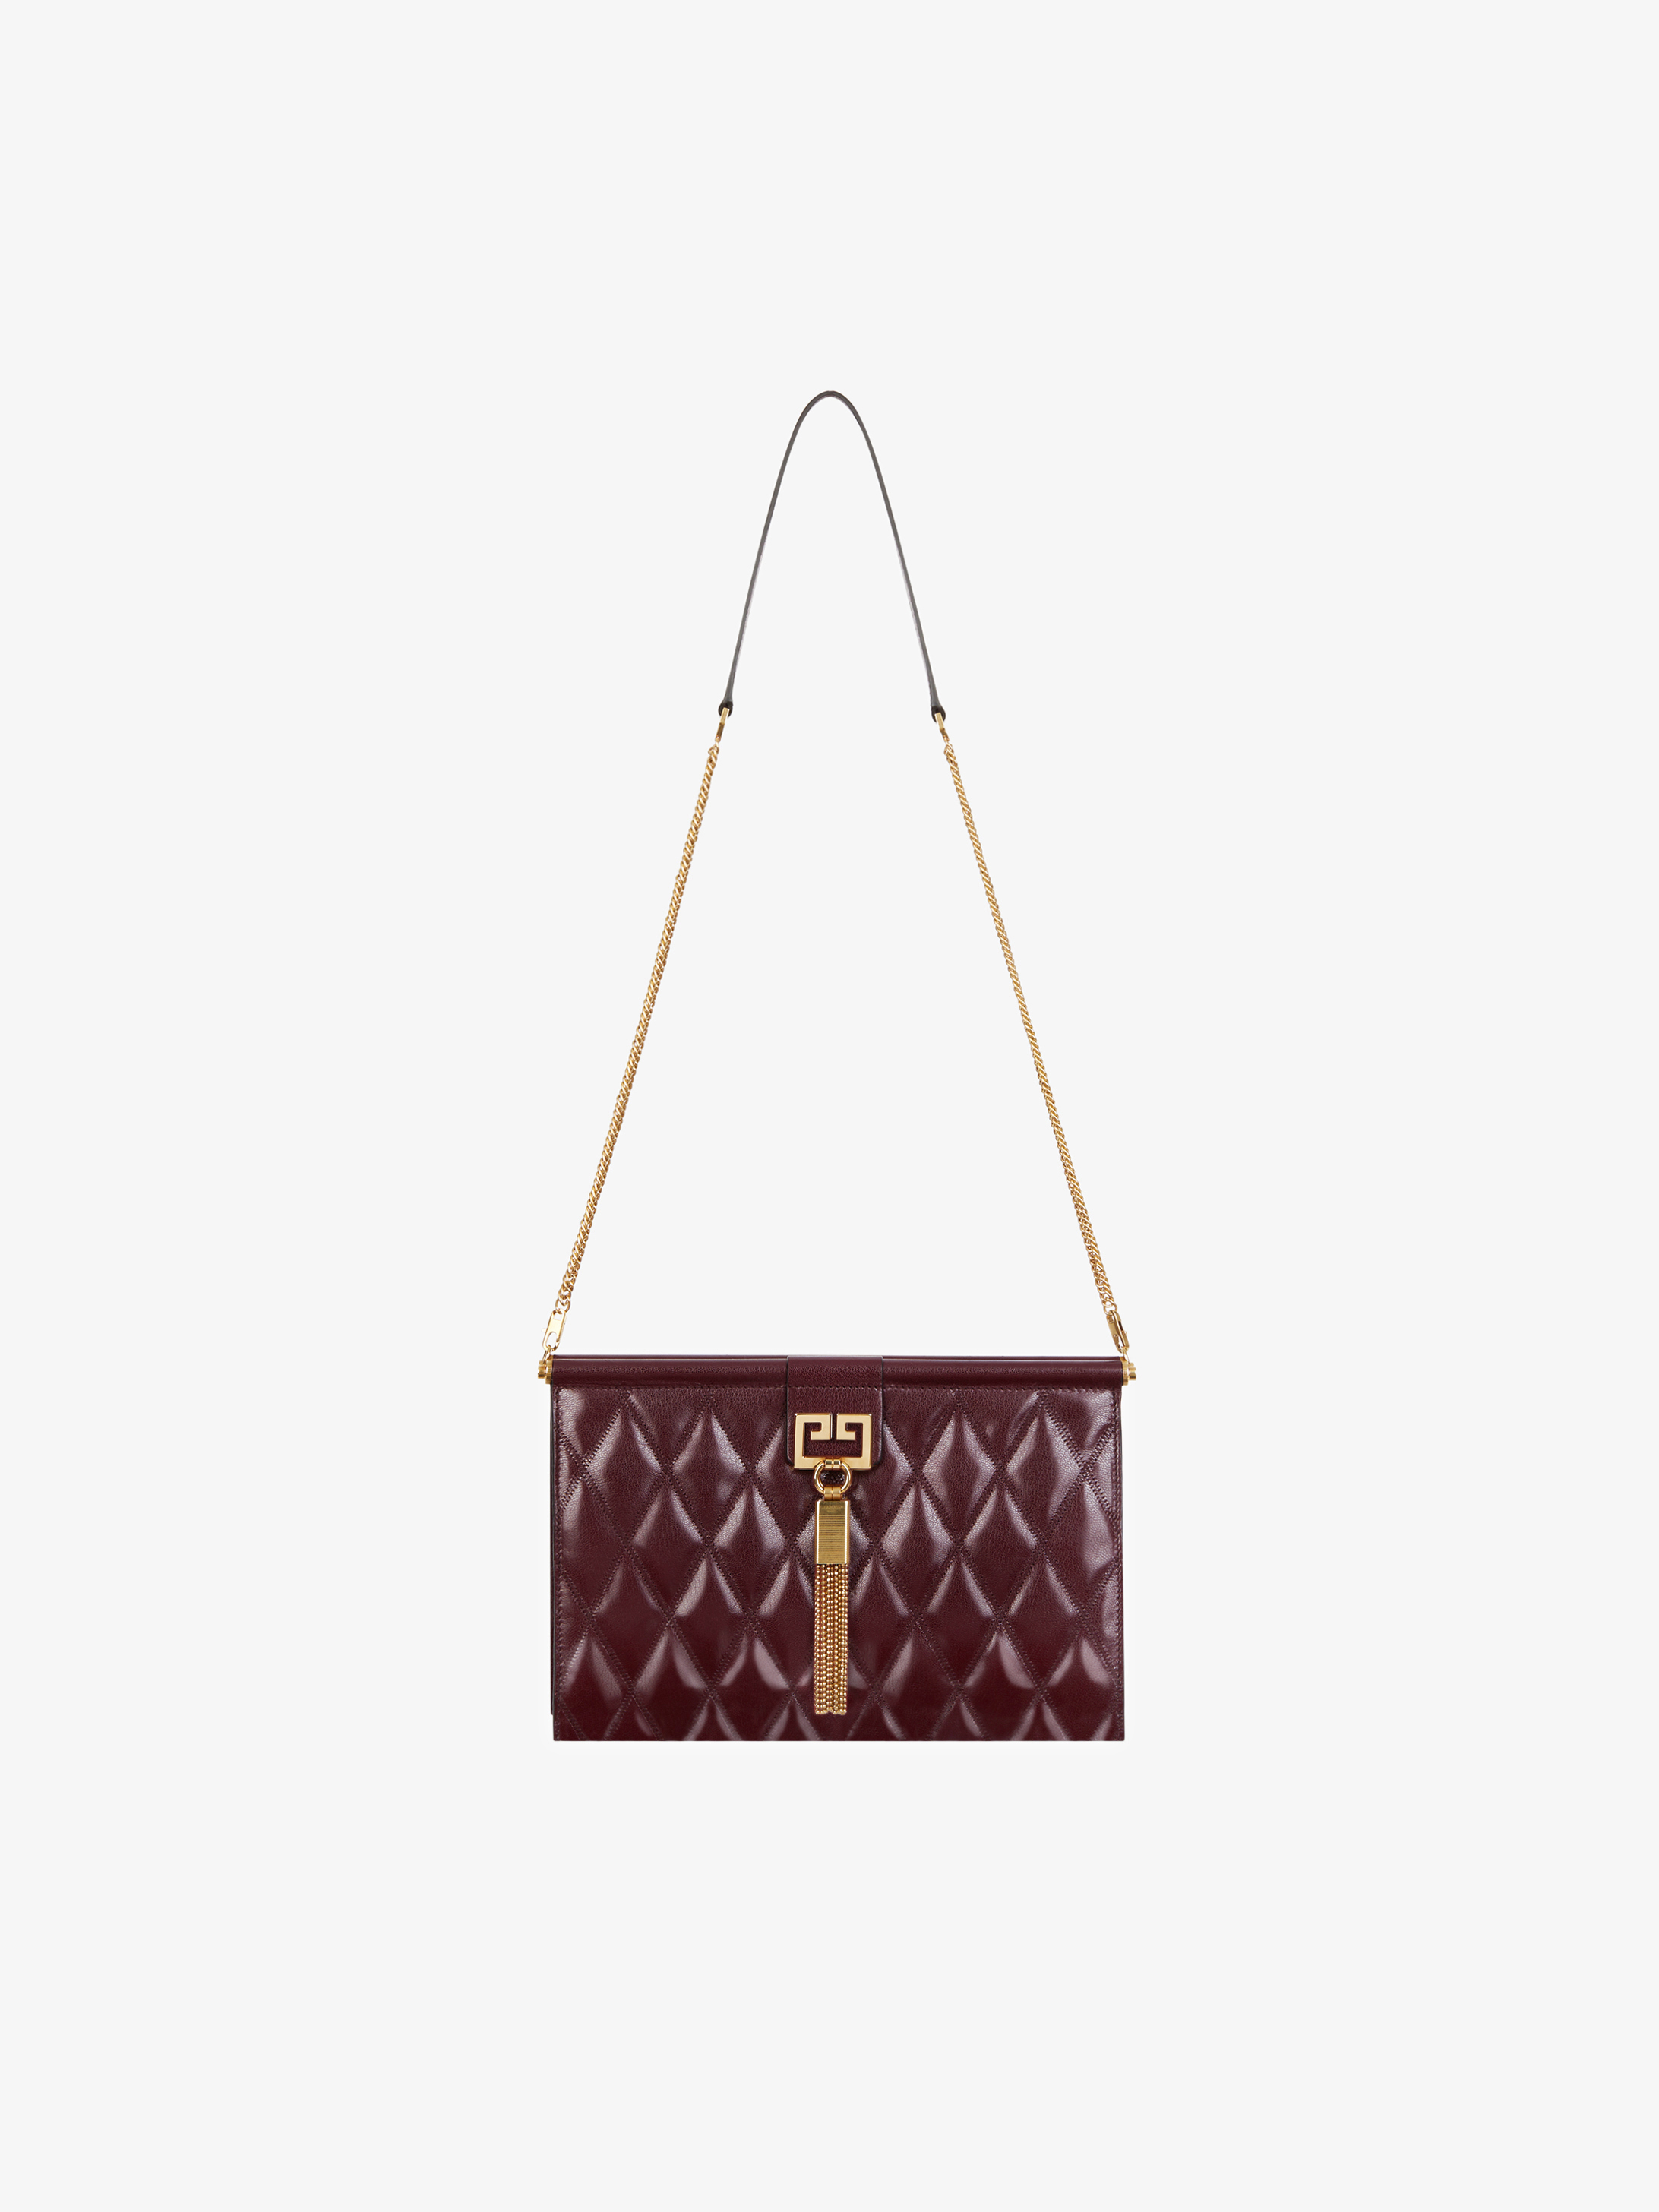 Medium GEM bag in diamond quilted leather